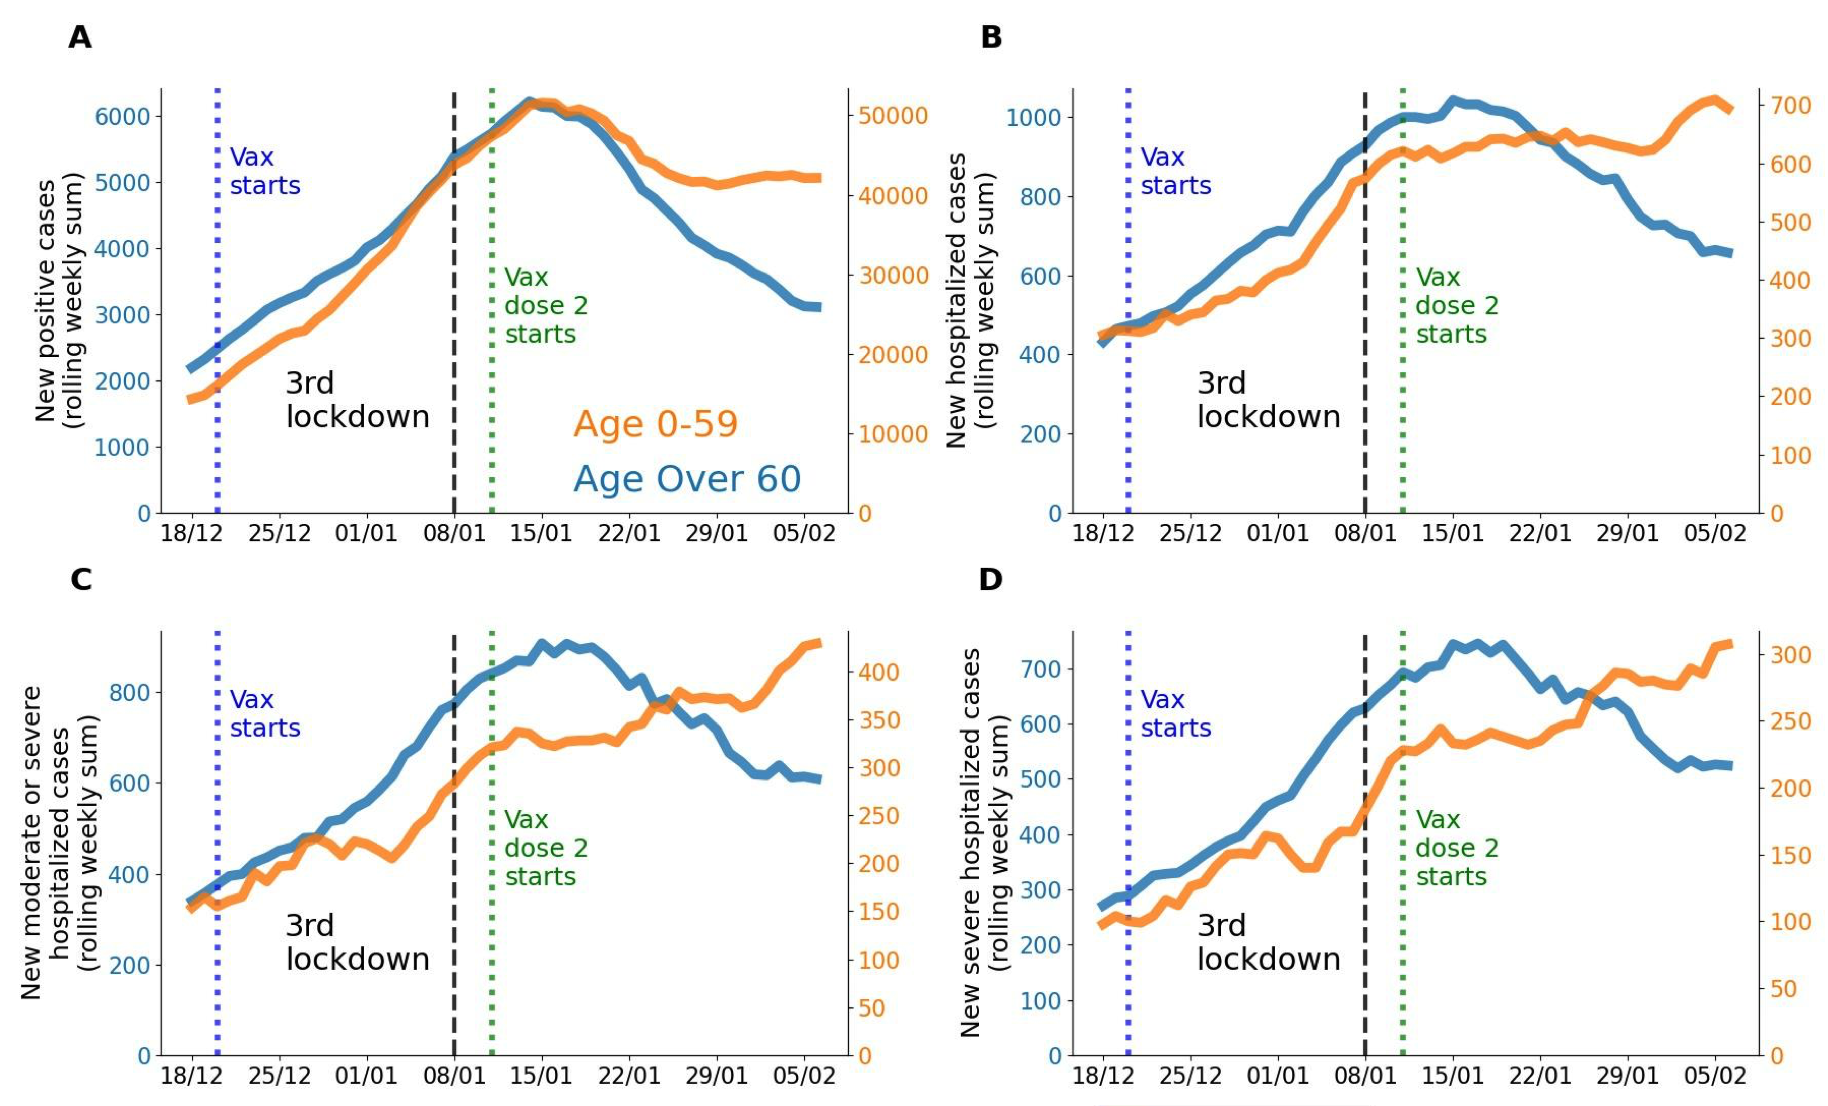 Dramatic decreases in Covid-19 after vaccination of people over age 60 in Israel